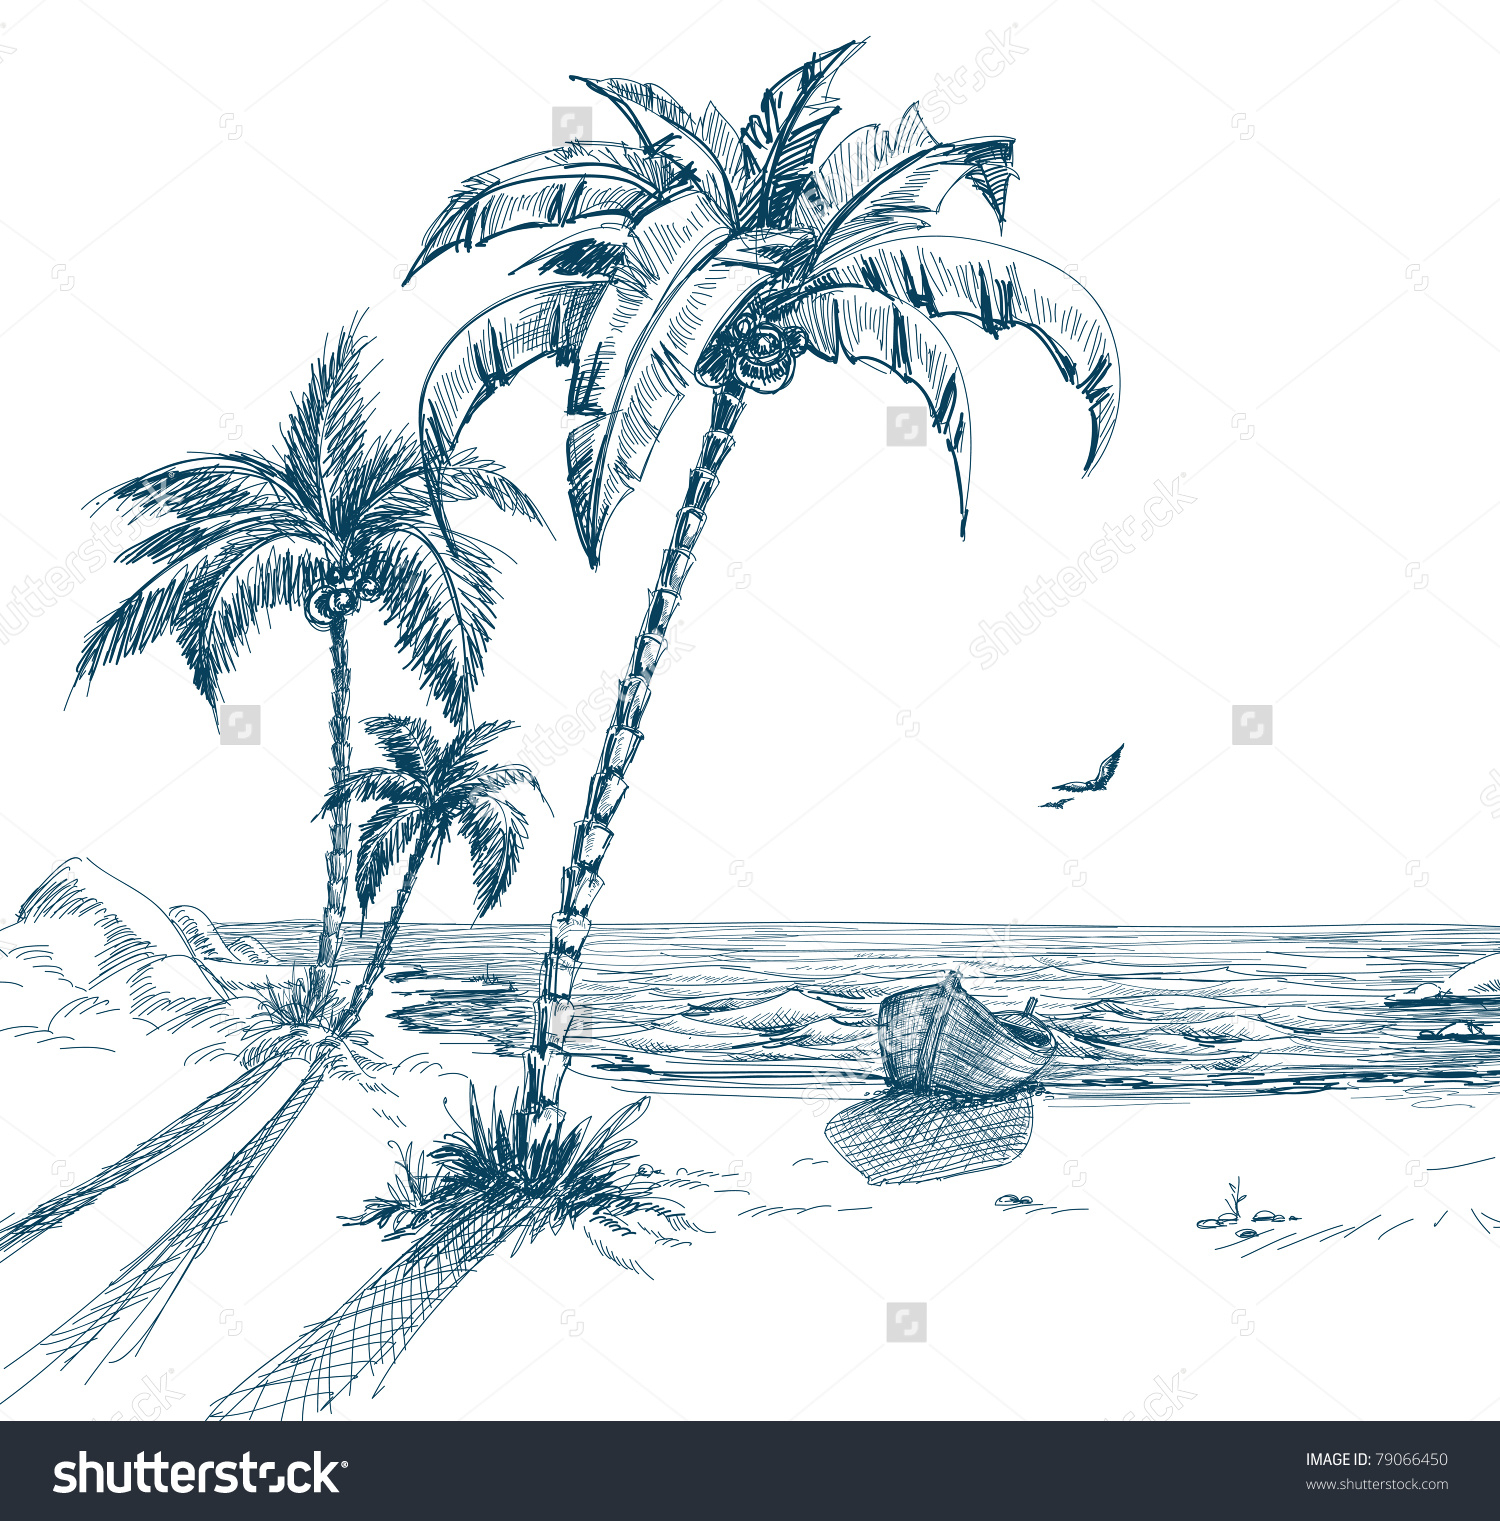 1500x1521 Palm Tree Beach Drawing Summer Beach Palm Trees Seagulls Boat